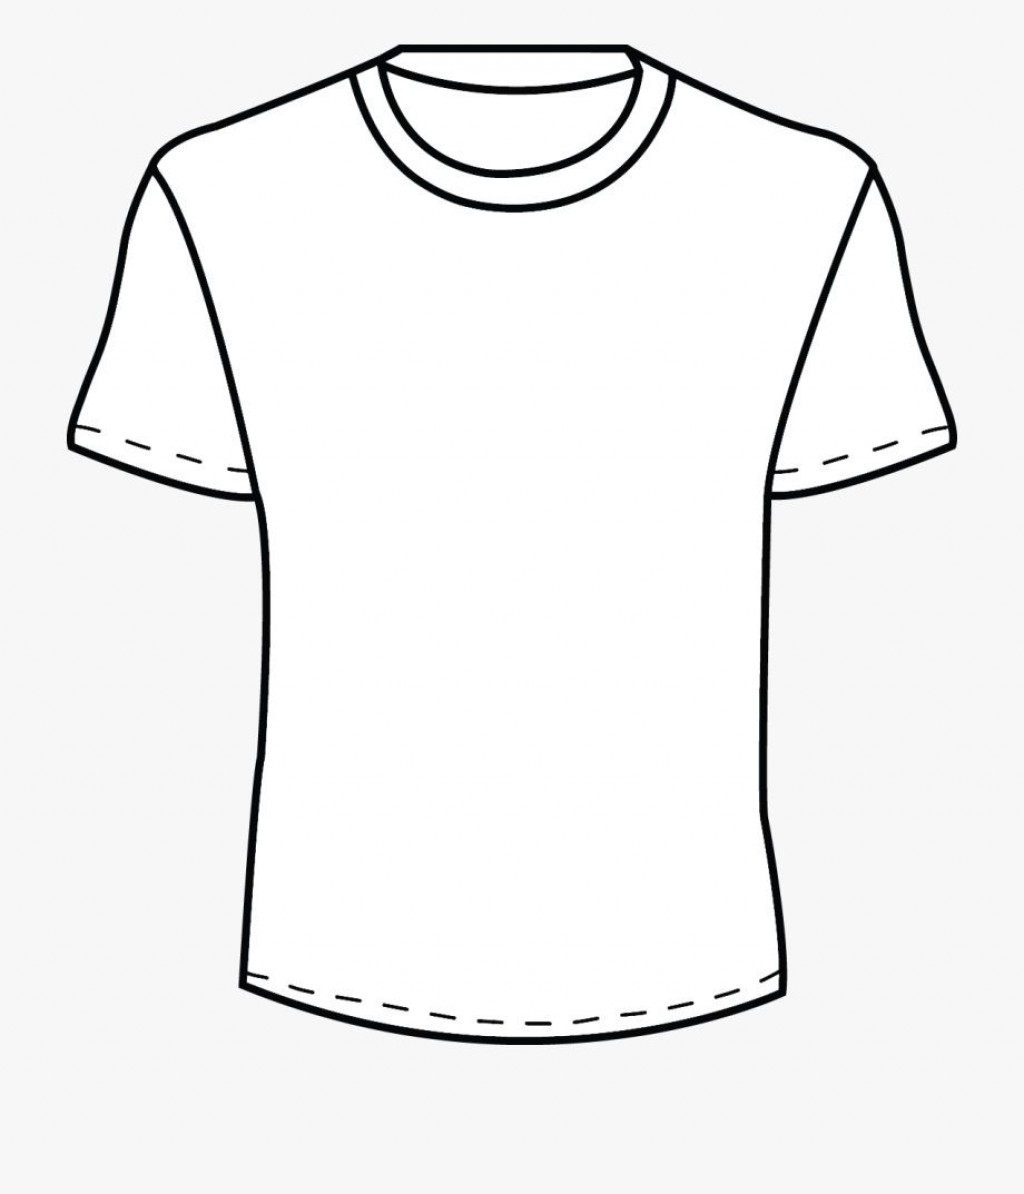 002 Beautiful Plain T Shirt Template Concept  Blank Front And BackLarge